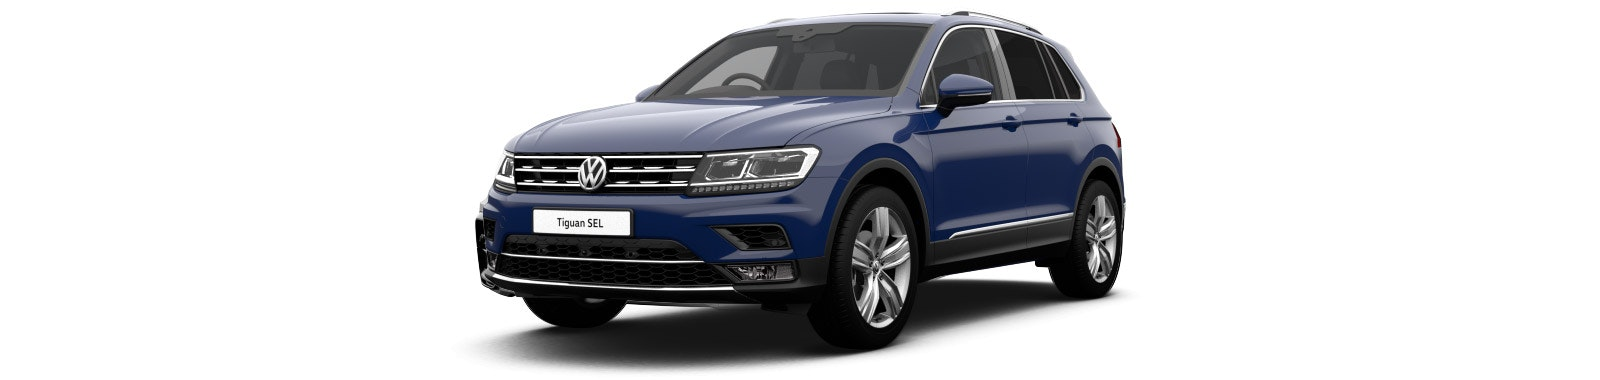 Atlantis Blue VW Tiguan